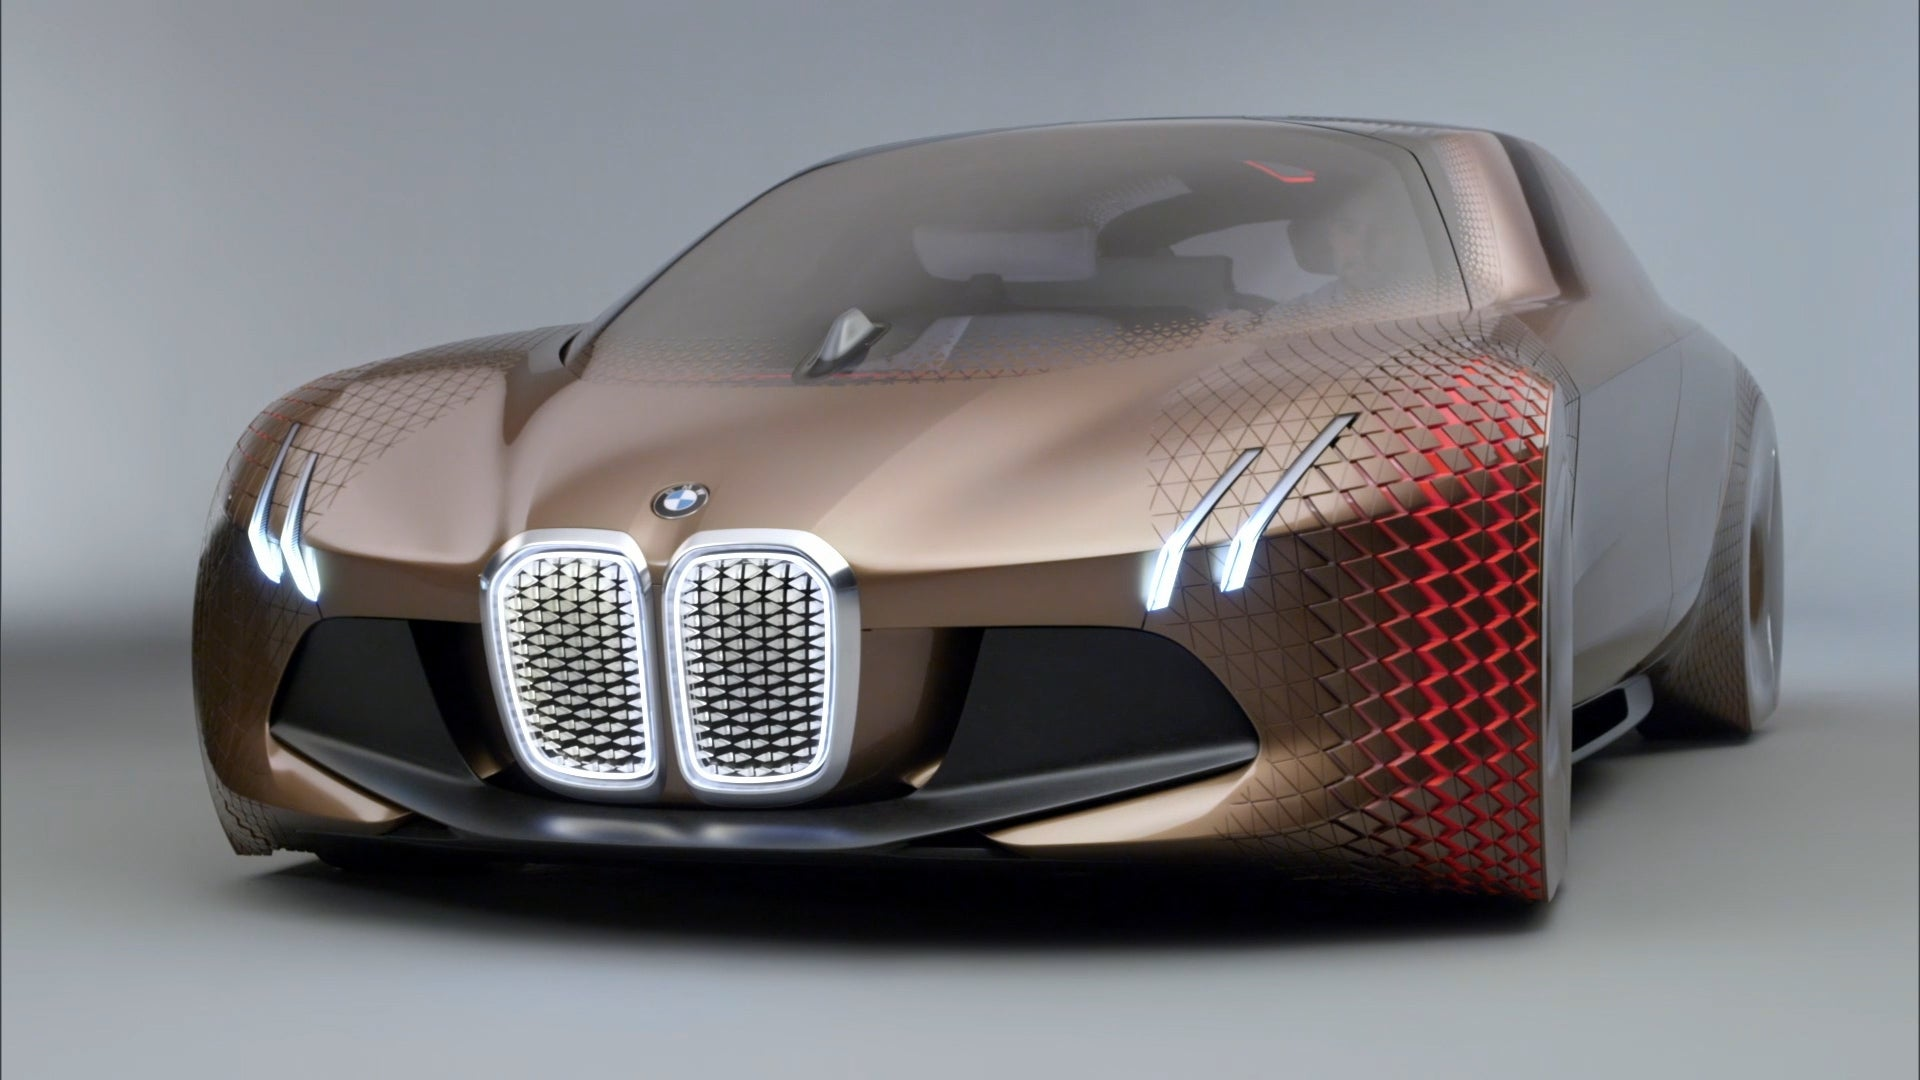 bmw's concept car wows with shape-shifting | idg.tv